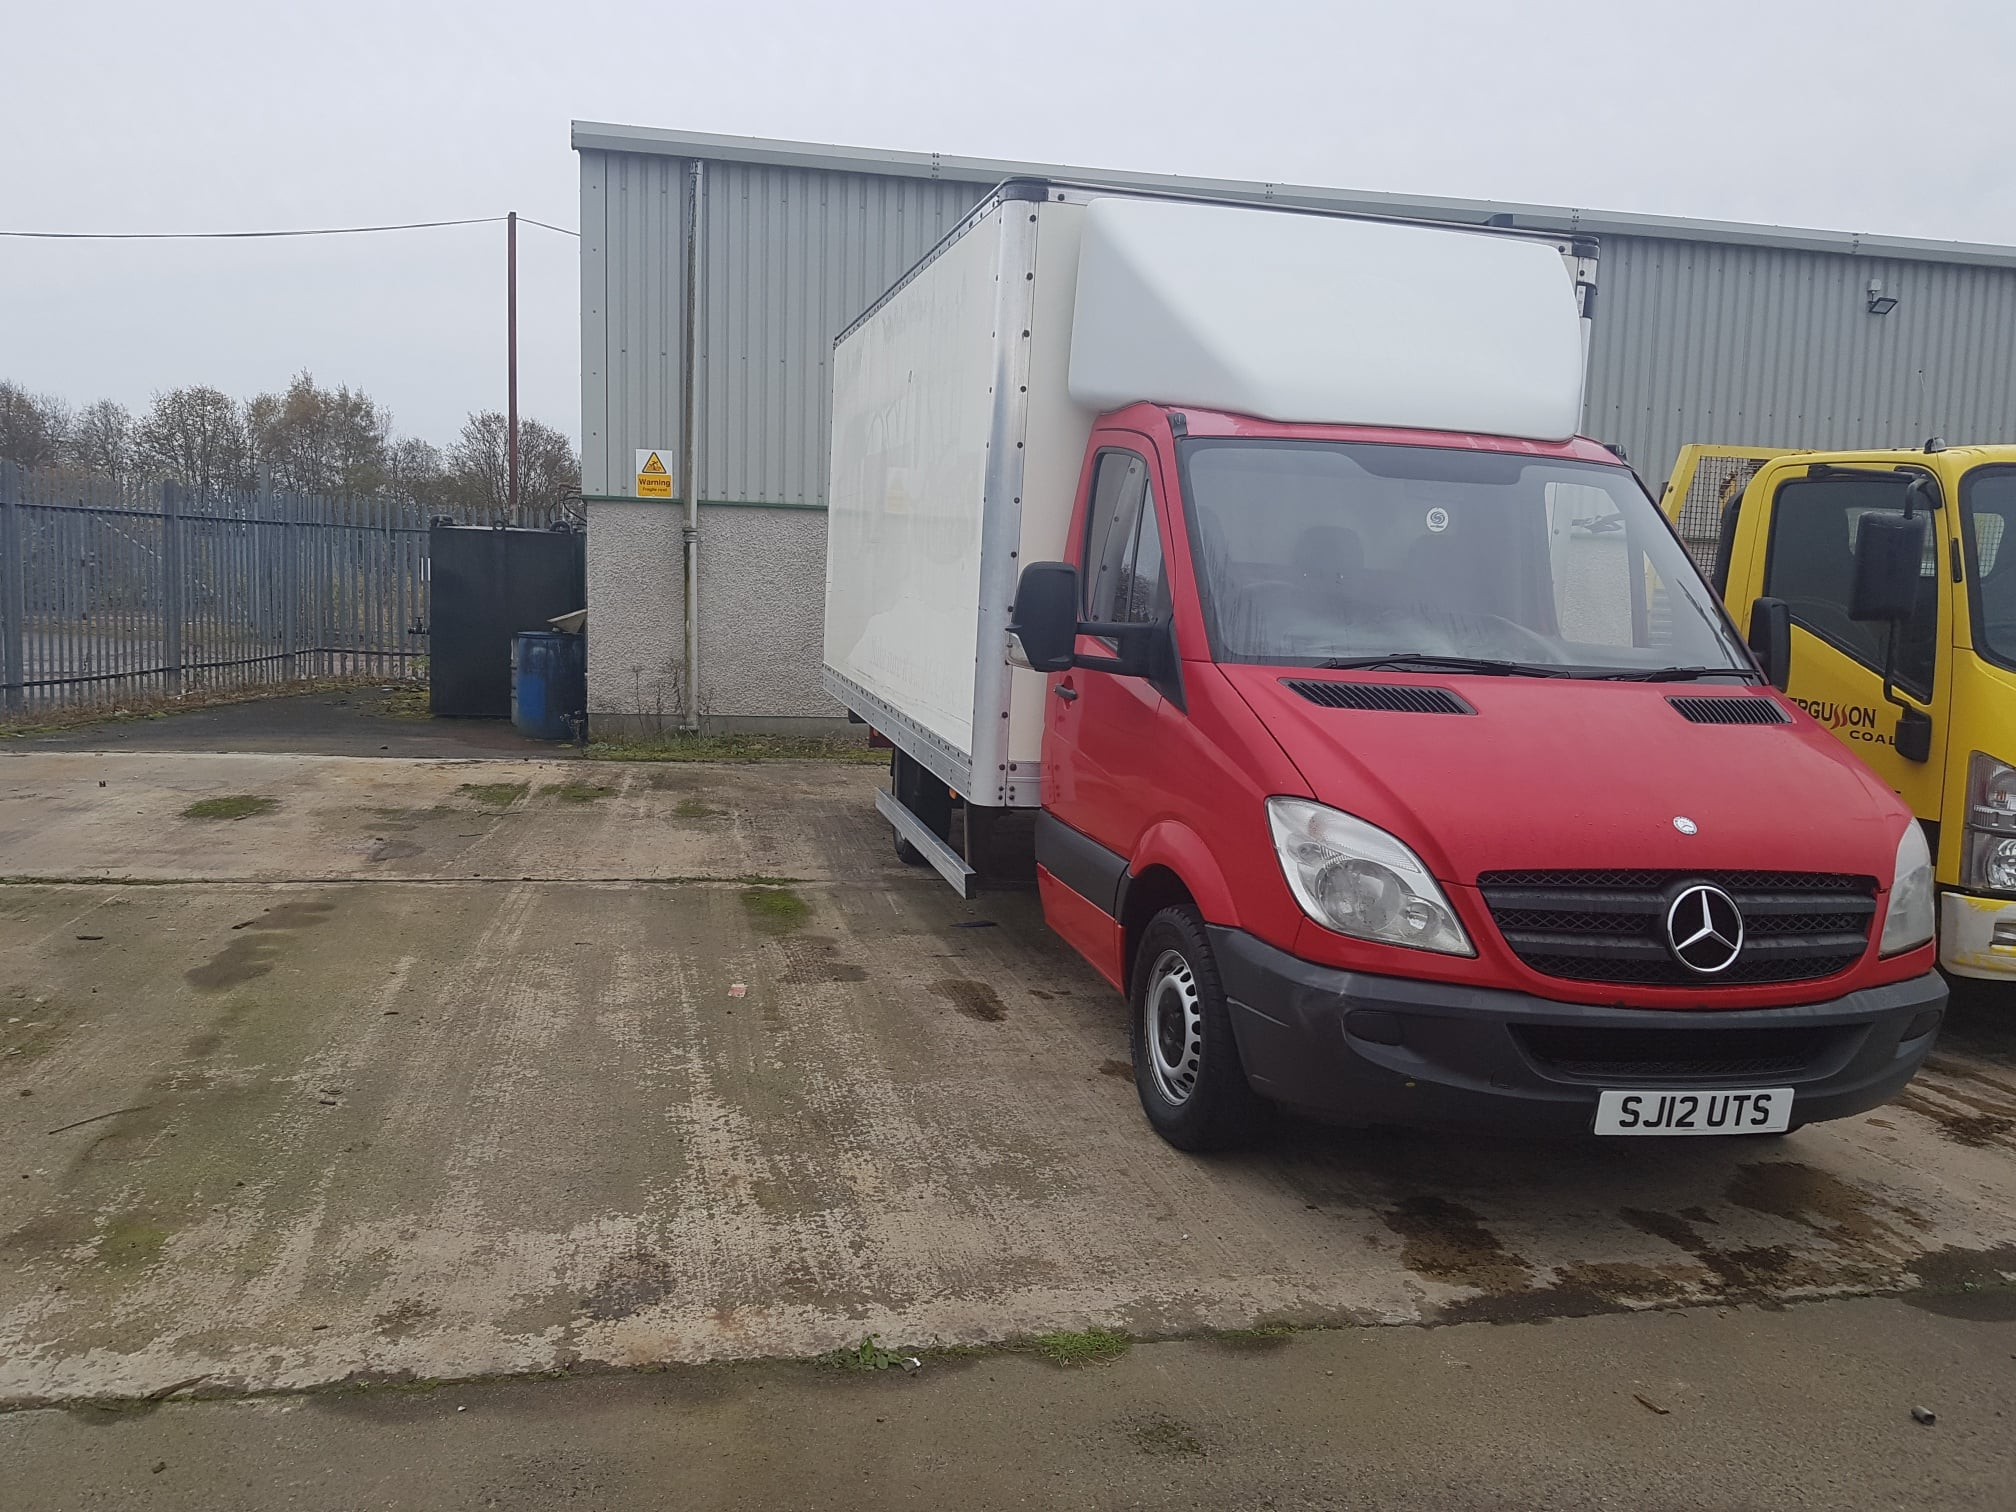 2012 Mercedes Sprinter 2.1TD 313 CDI LWB, 15ft Boxvan, Manual Gearbox, 153,443 Miles, Anti-Lock Brakes (ABS), Driver Airbag, Immobiliser, AM/FM Stereo, CD Player, Cruise Control, Power-assisted Steering (PAS), First Registration: 30/04/2012.